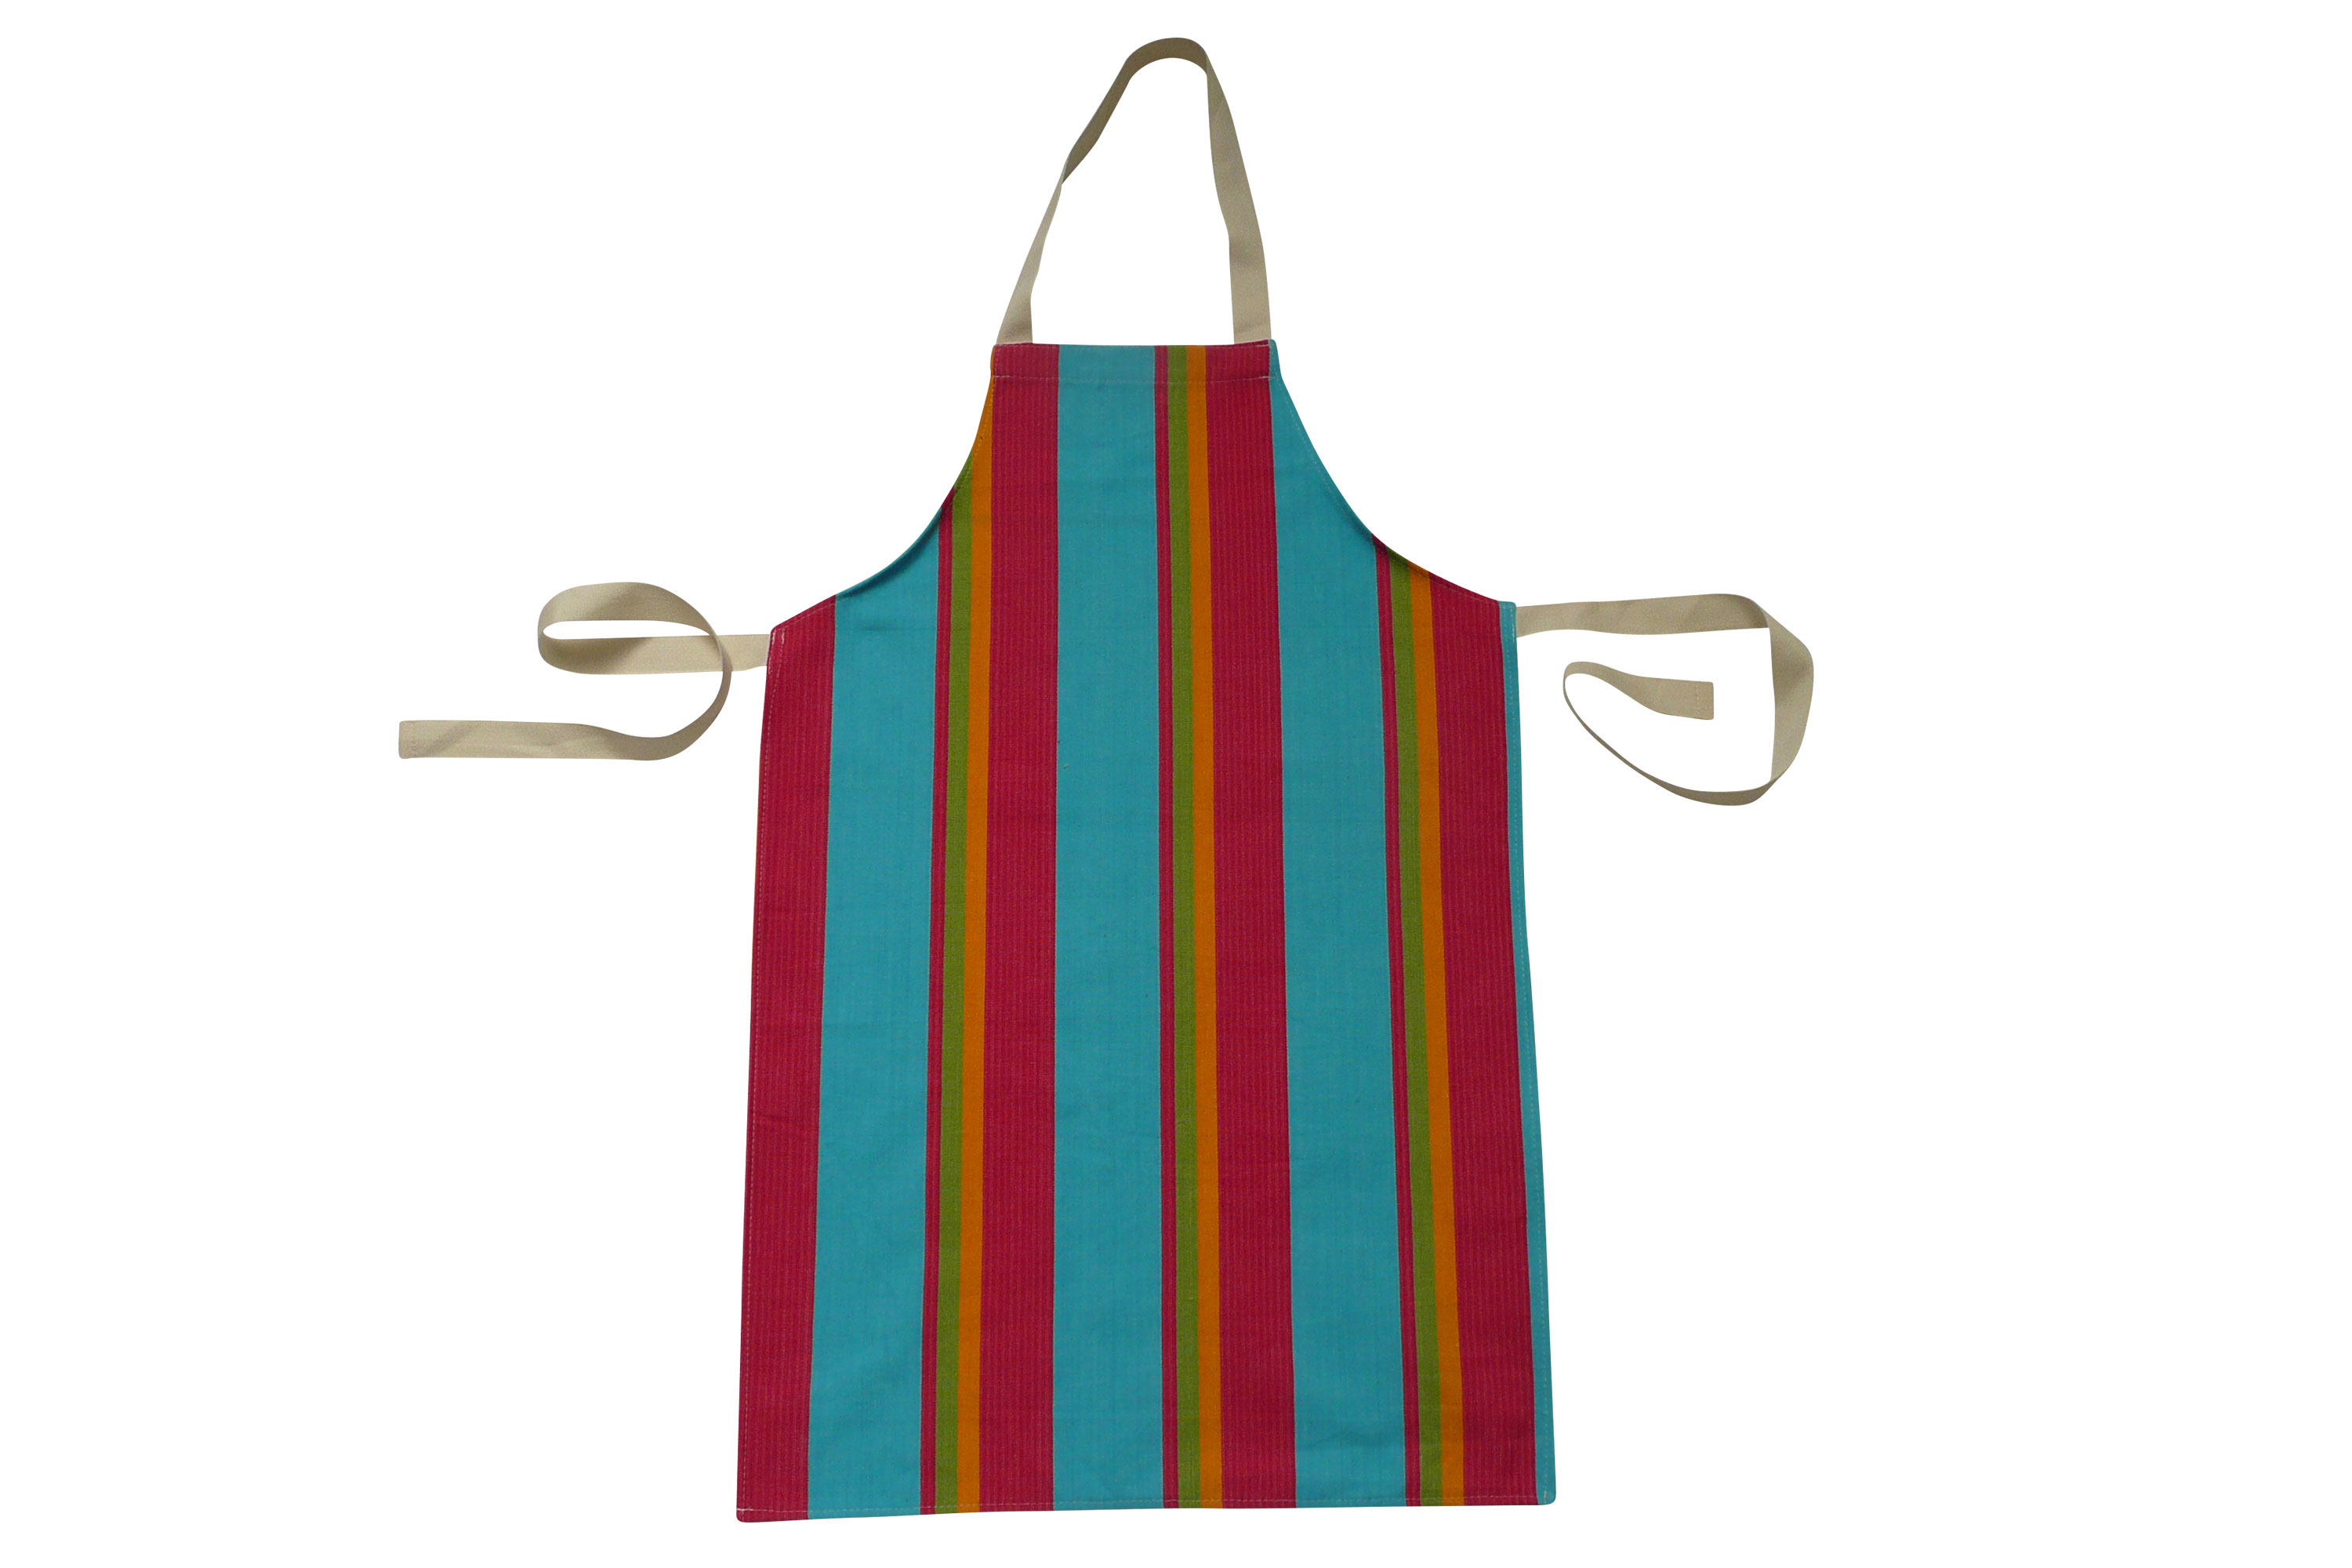 Striped Kids Aprons | Aprons for Children pink, turquoise, yellow